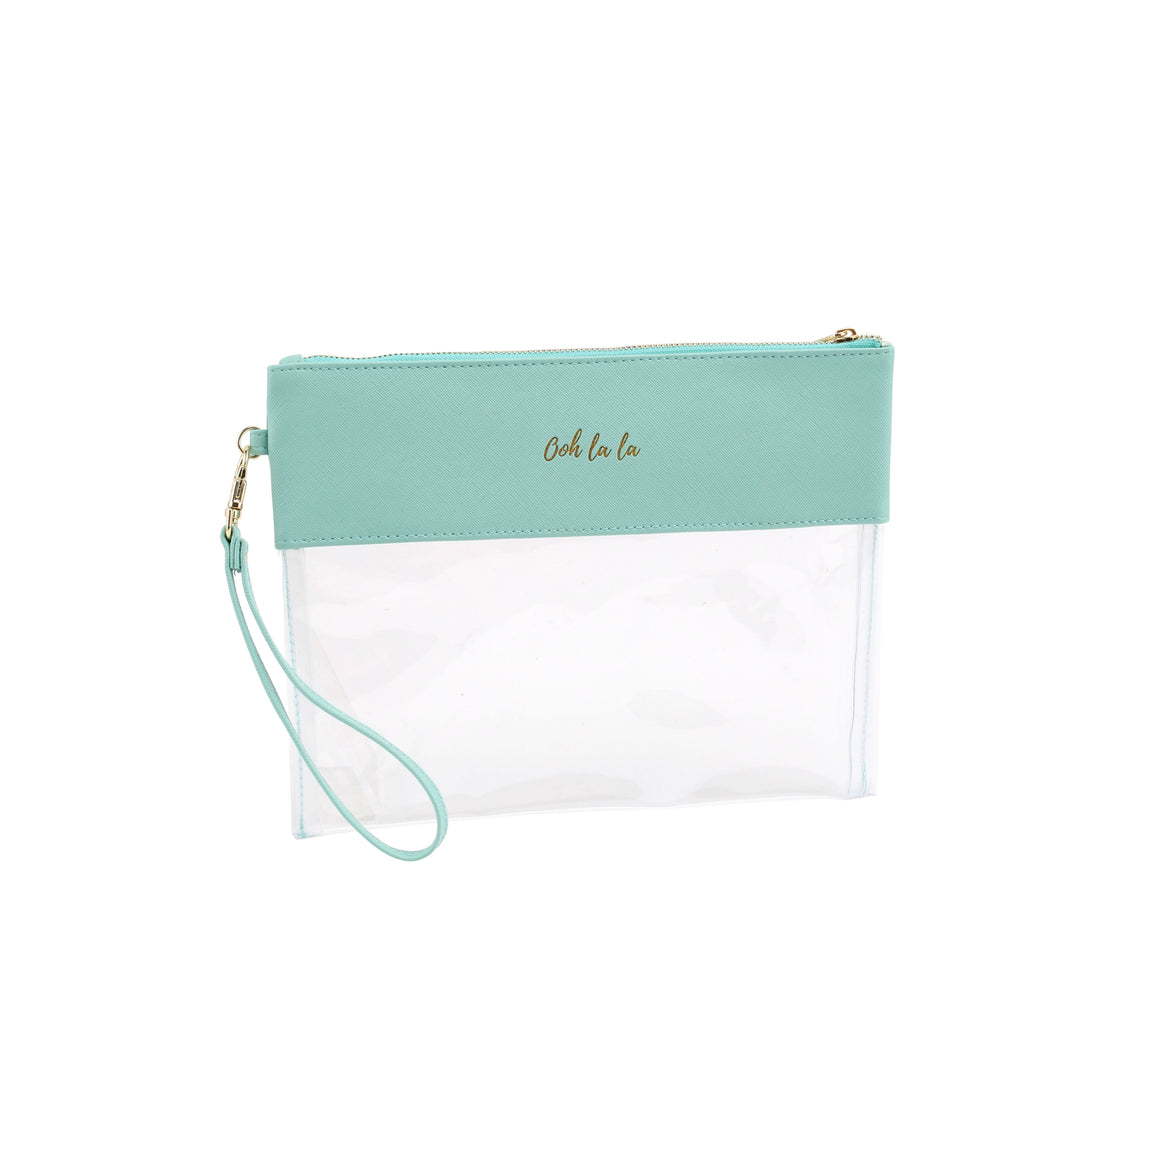 Willow & Rose Teal 'Ooh La La' Travel Pouch